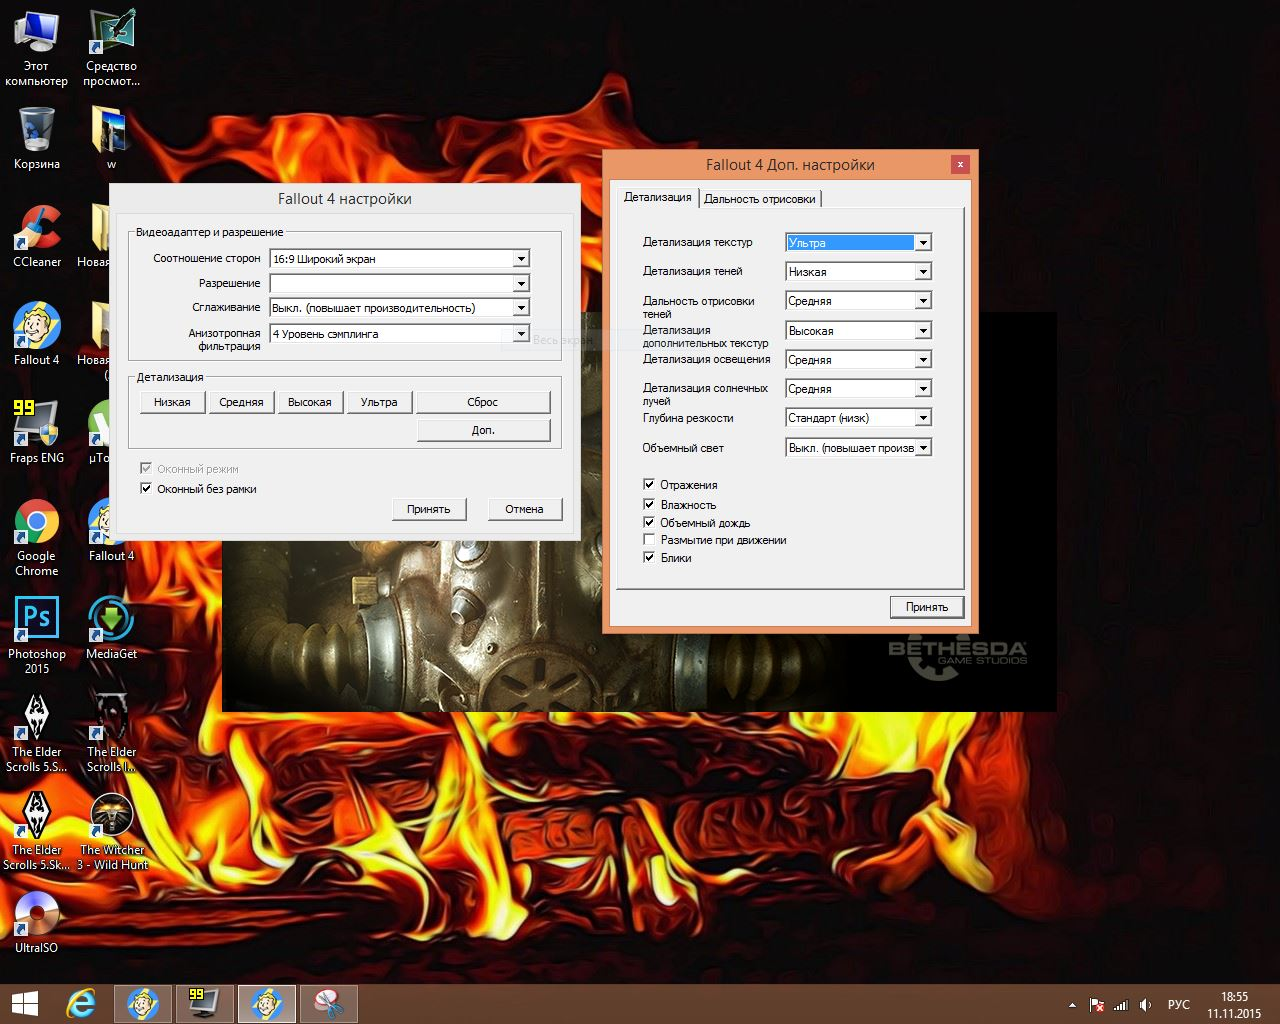 Pc fallout 4 nosteam crack + download + tutorial youtube.